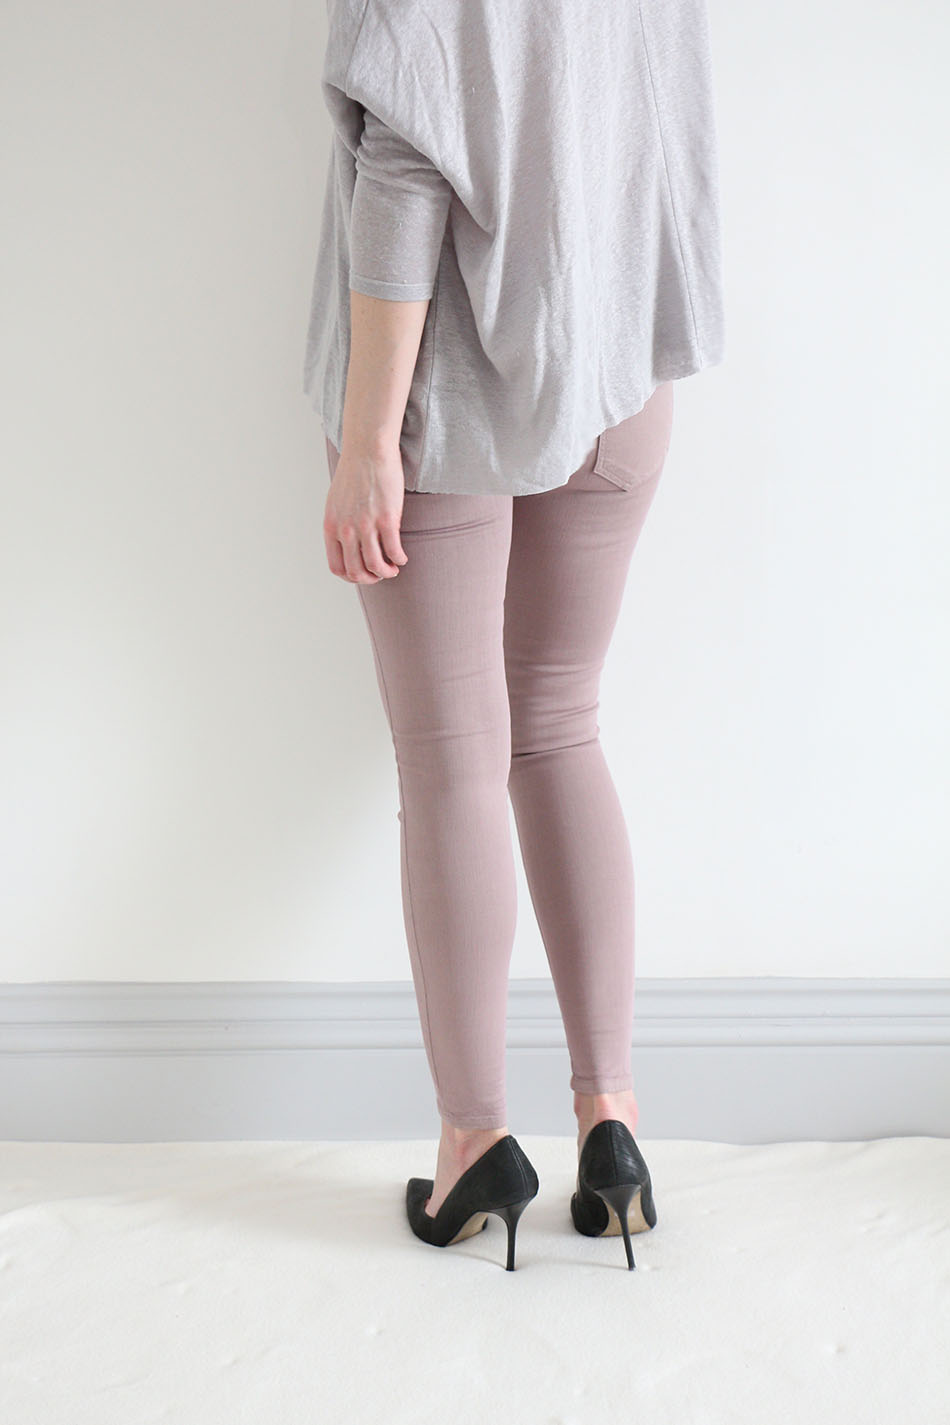 Fringe and Doll Denim Guide Pink Jeans IMG_3007